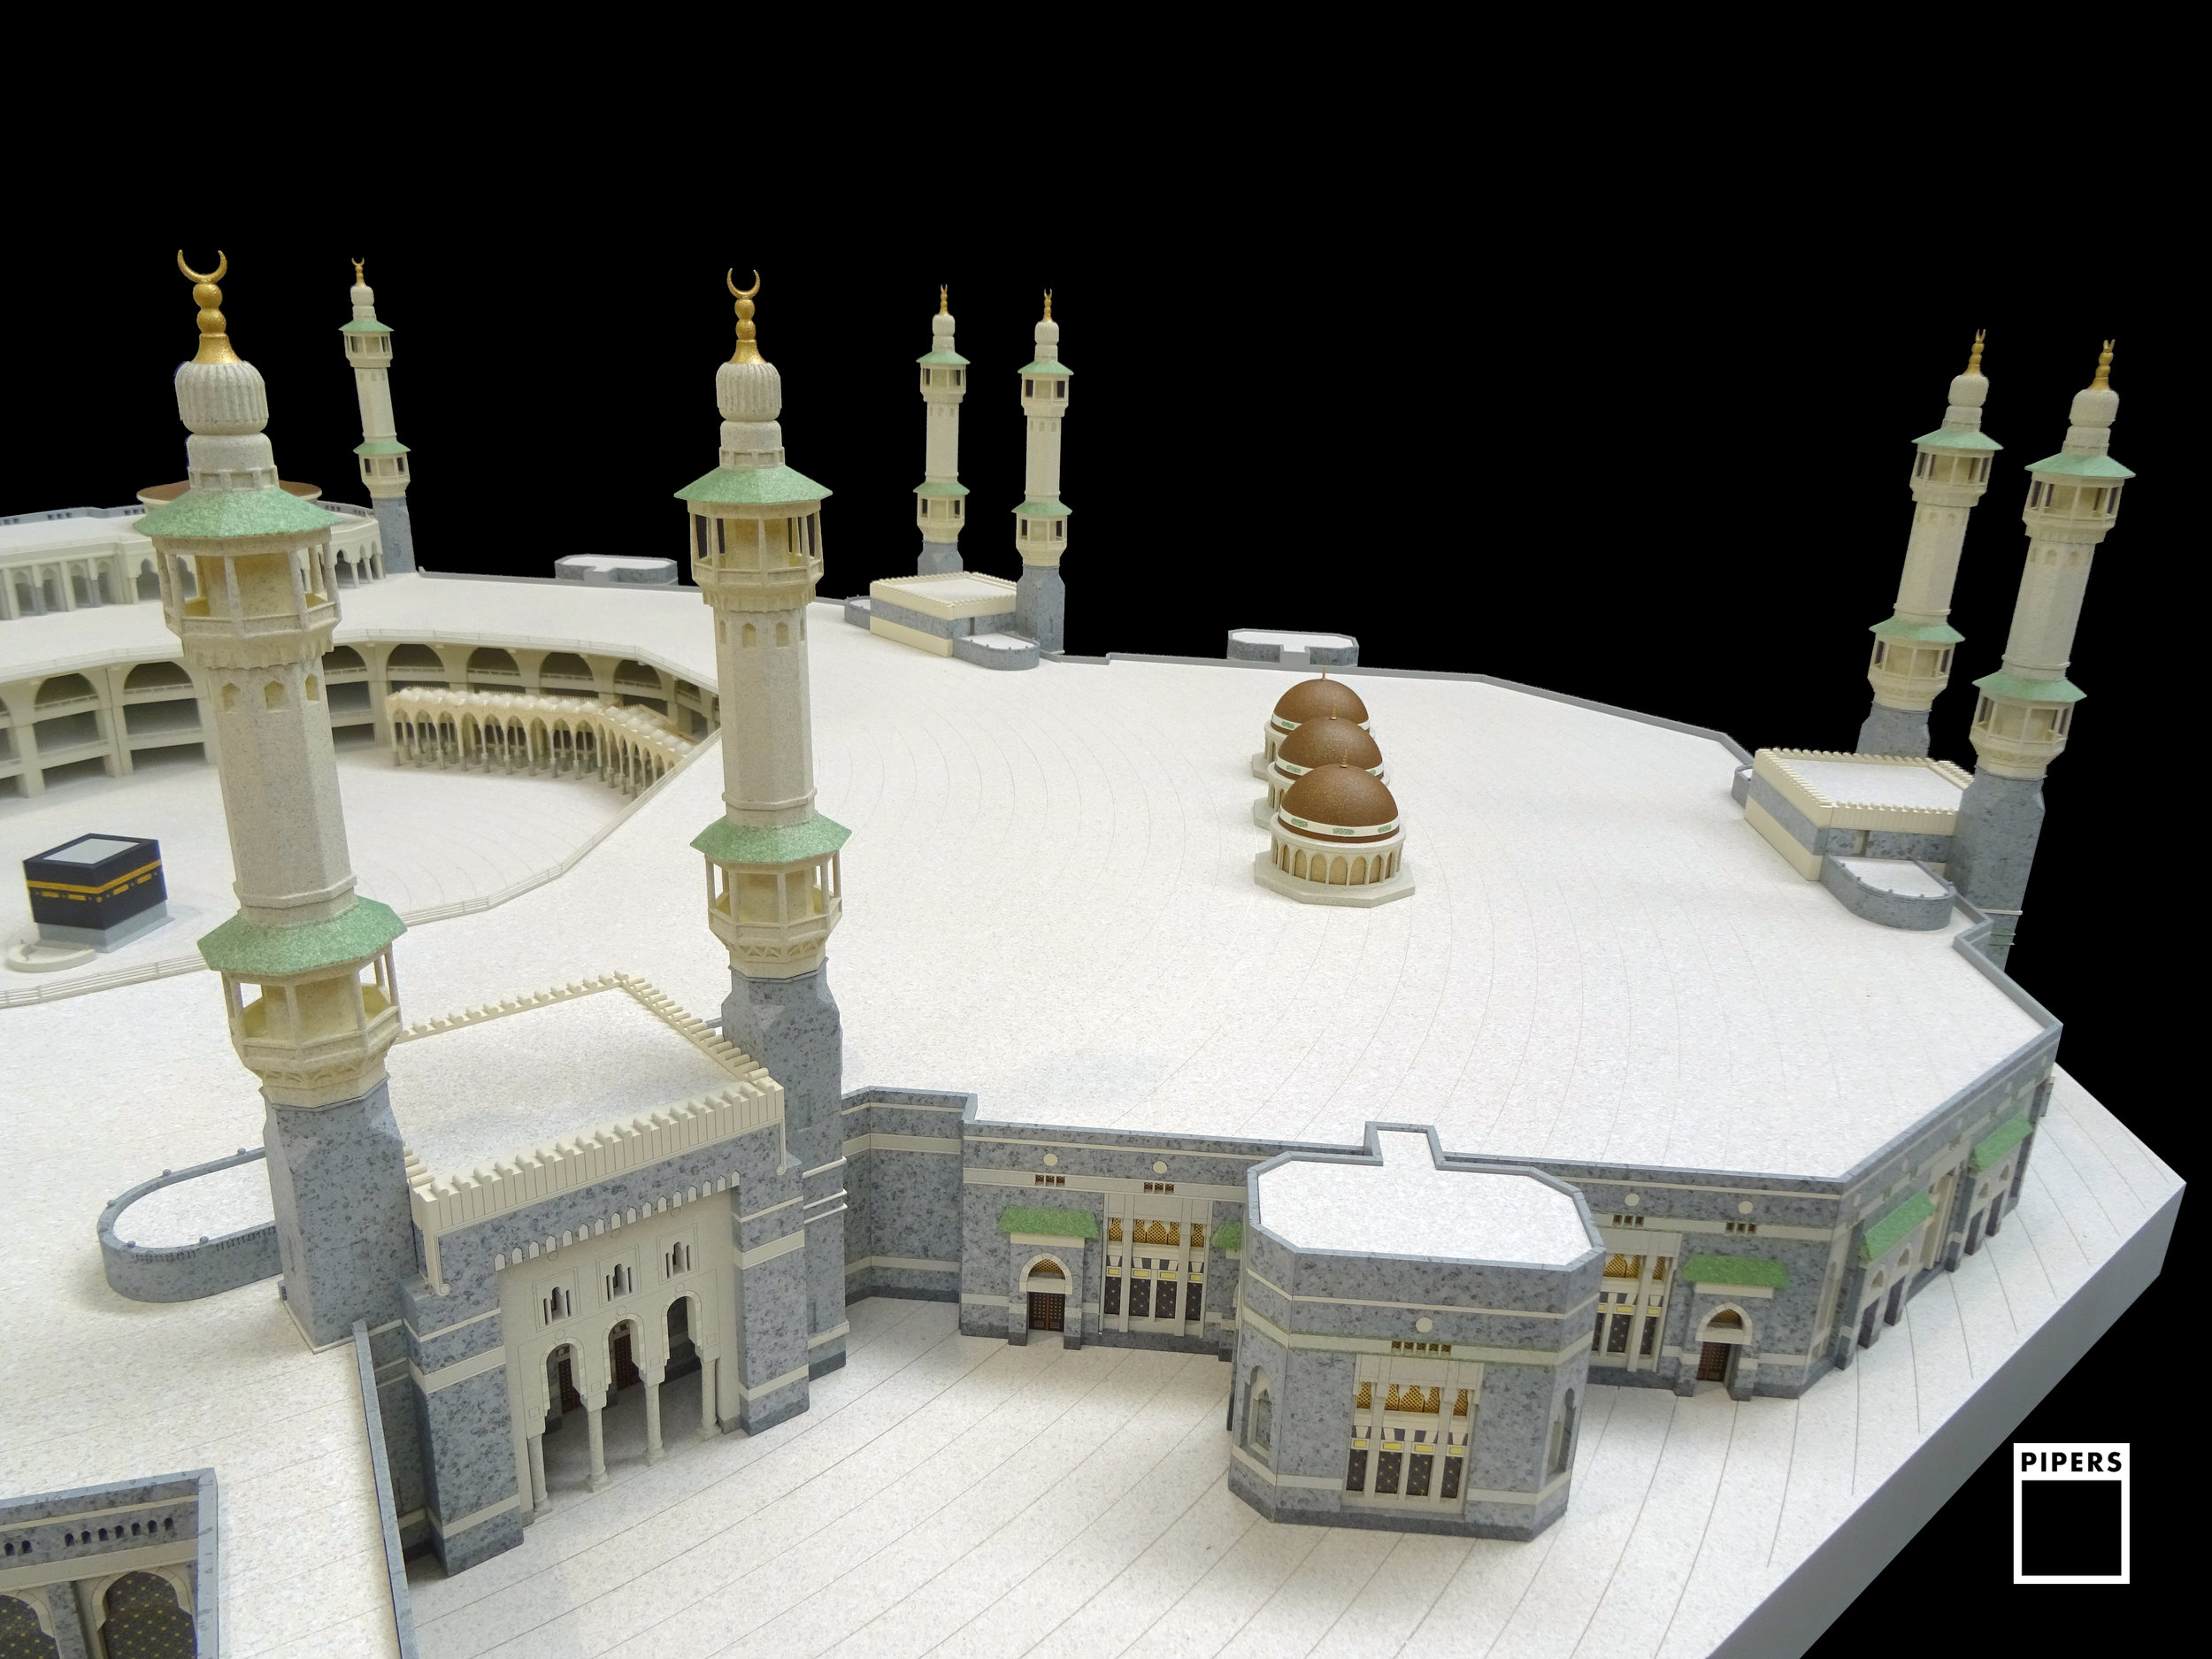 ARABIC ISLAMIC SCIENCE MUSEUM — Pipers Model Makers